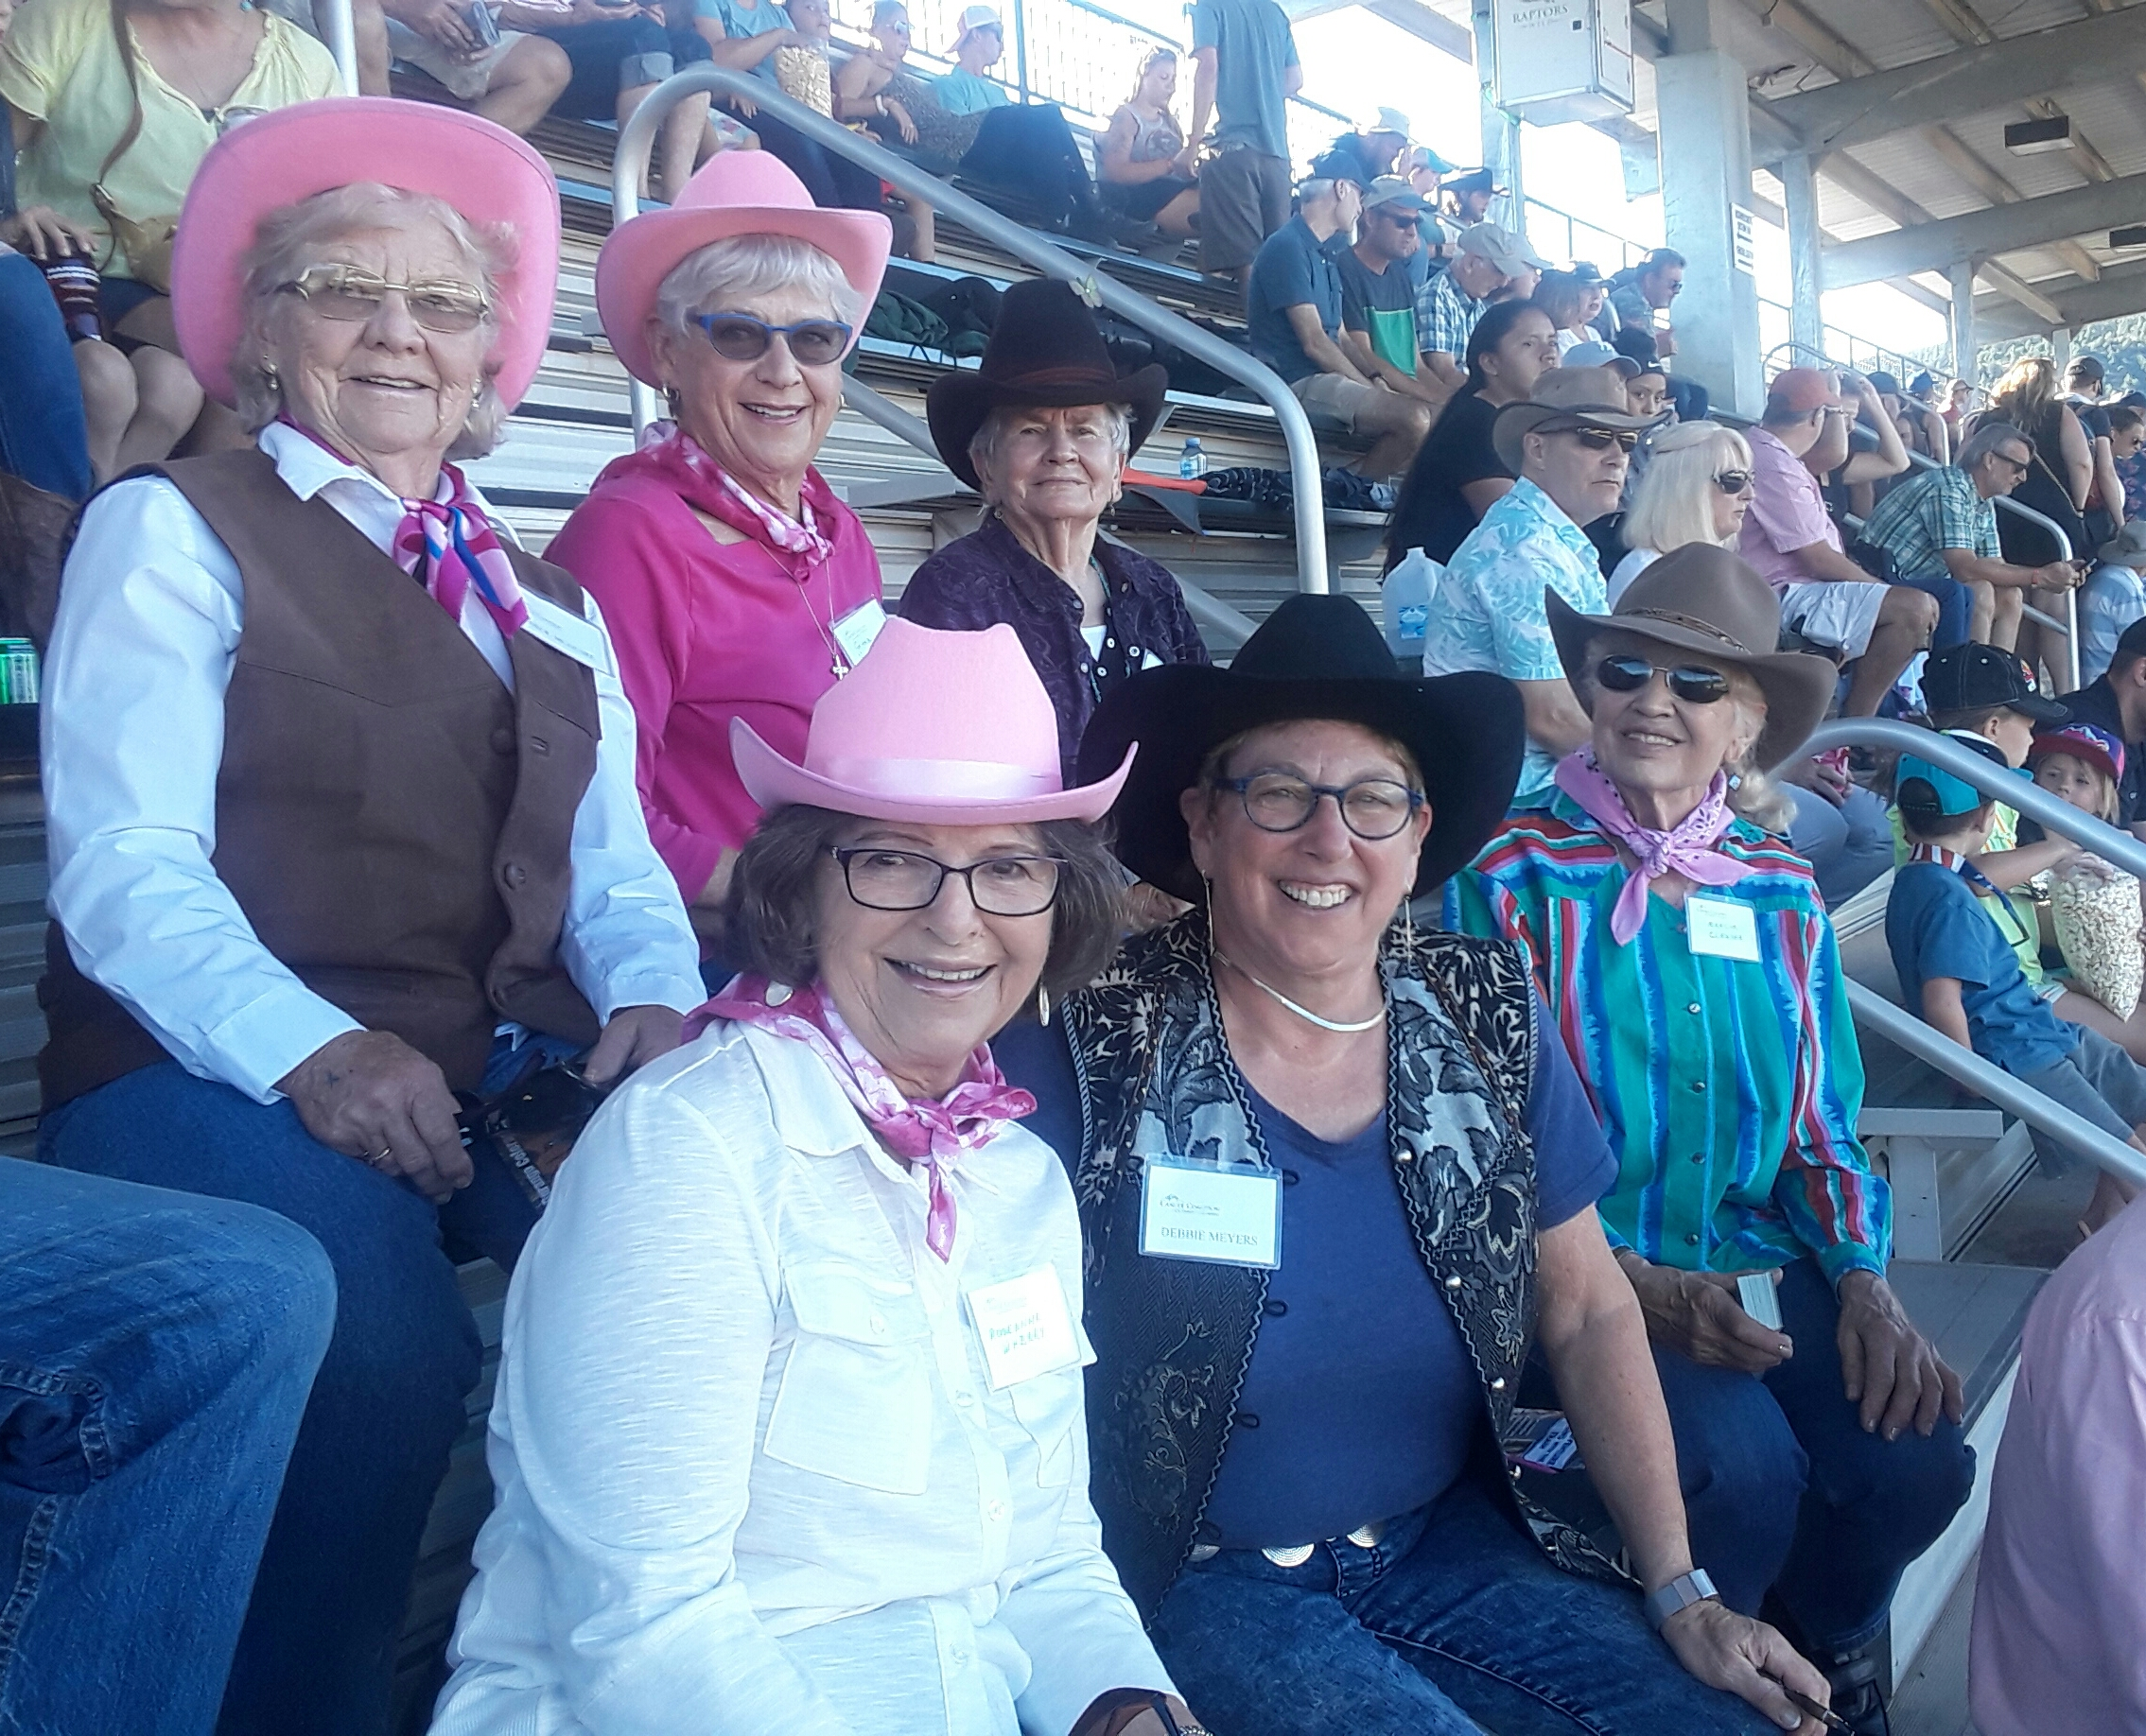 True West Rodeo July 10, 2019 @ La Plata County Fairgrounds